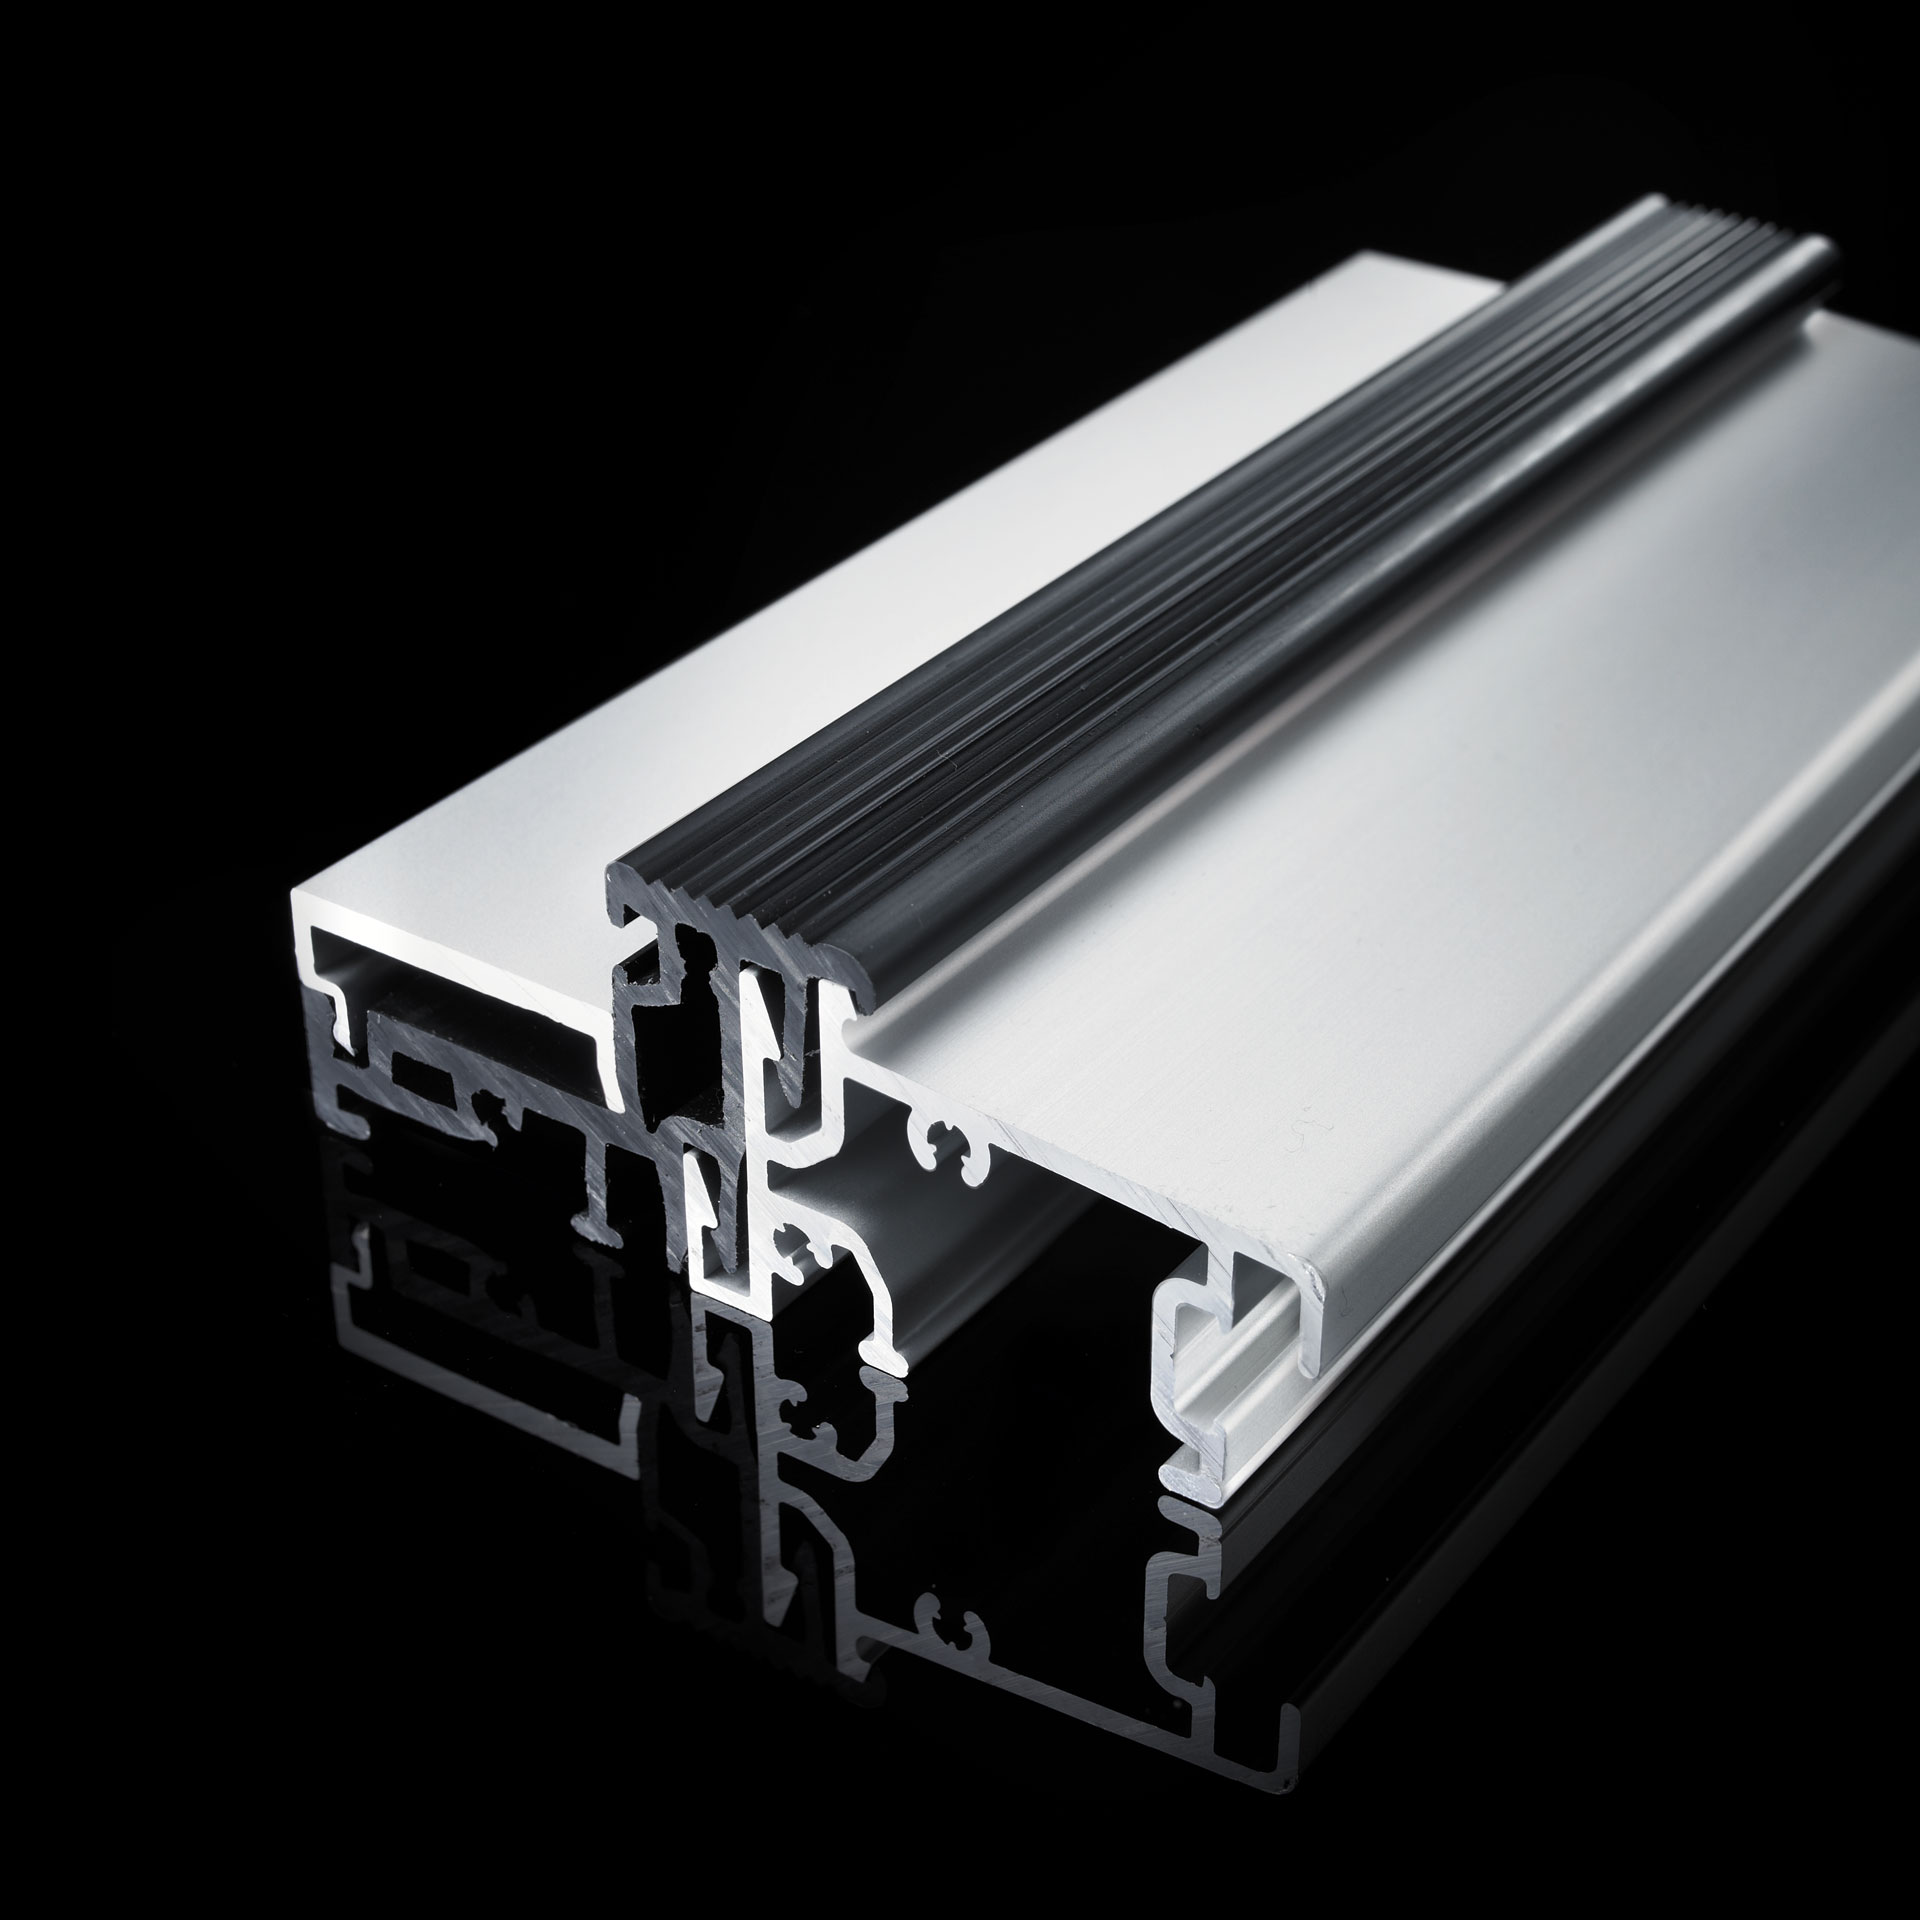 Aluminium door thresholds for all front and balcony doors. GUTMANN door sills offer highest watertightness. Improved thermal insulation of the door slepers thanks to thermal separation with plastic profile.